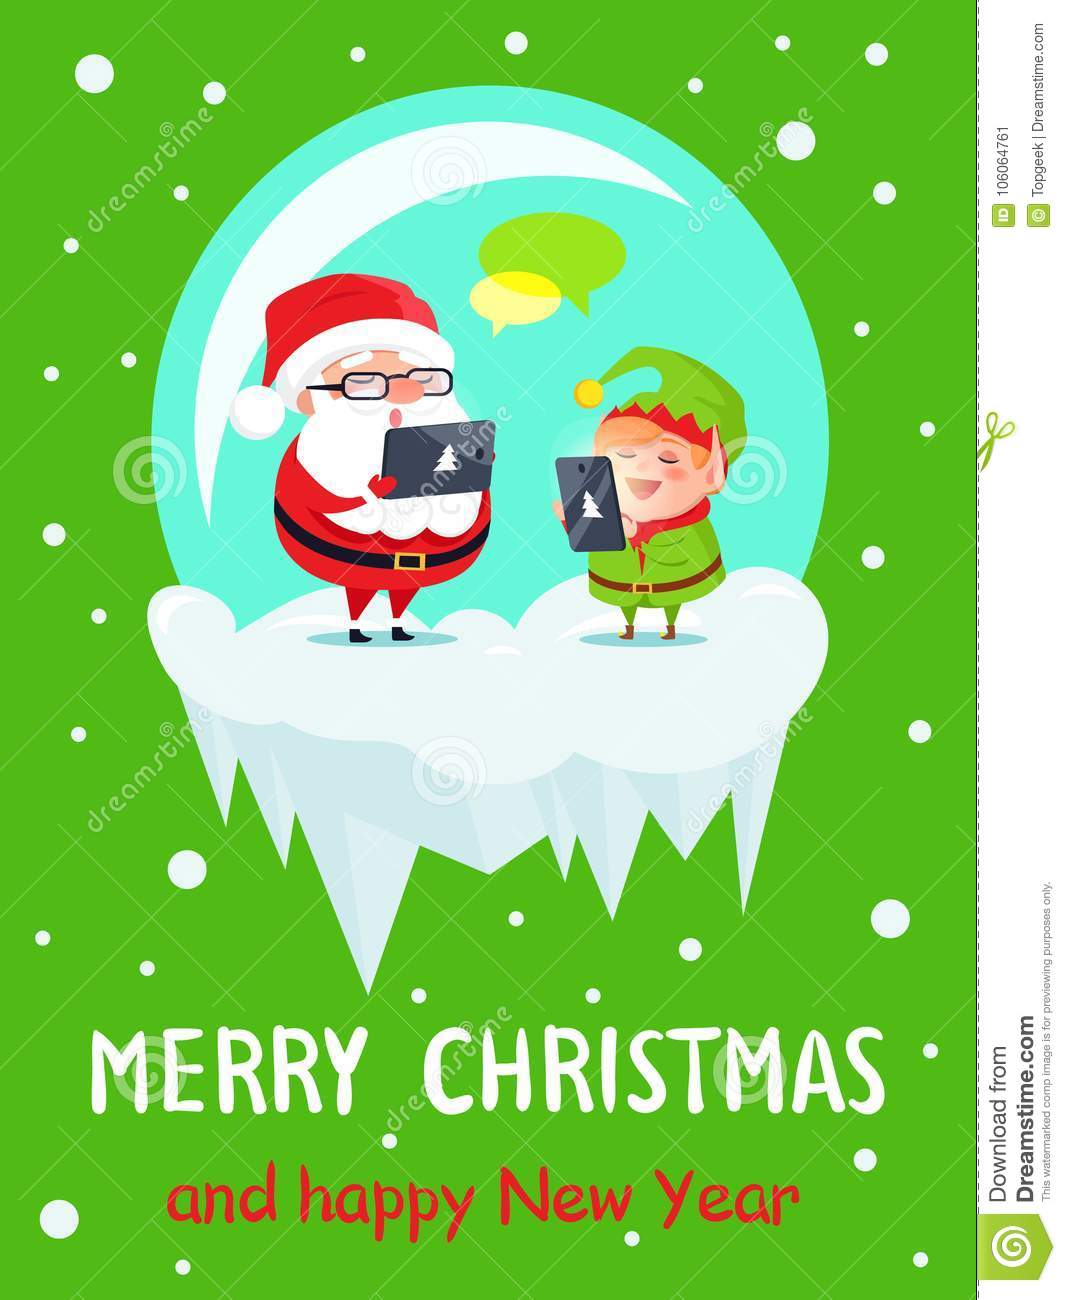 Merry Christmas And Happy New Year Greeting Cards Stock Vector ...